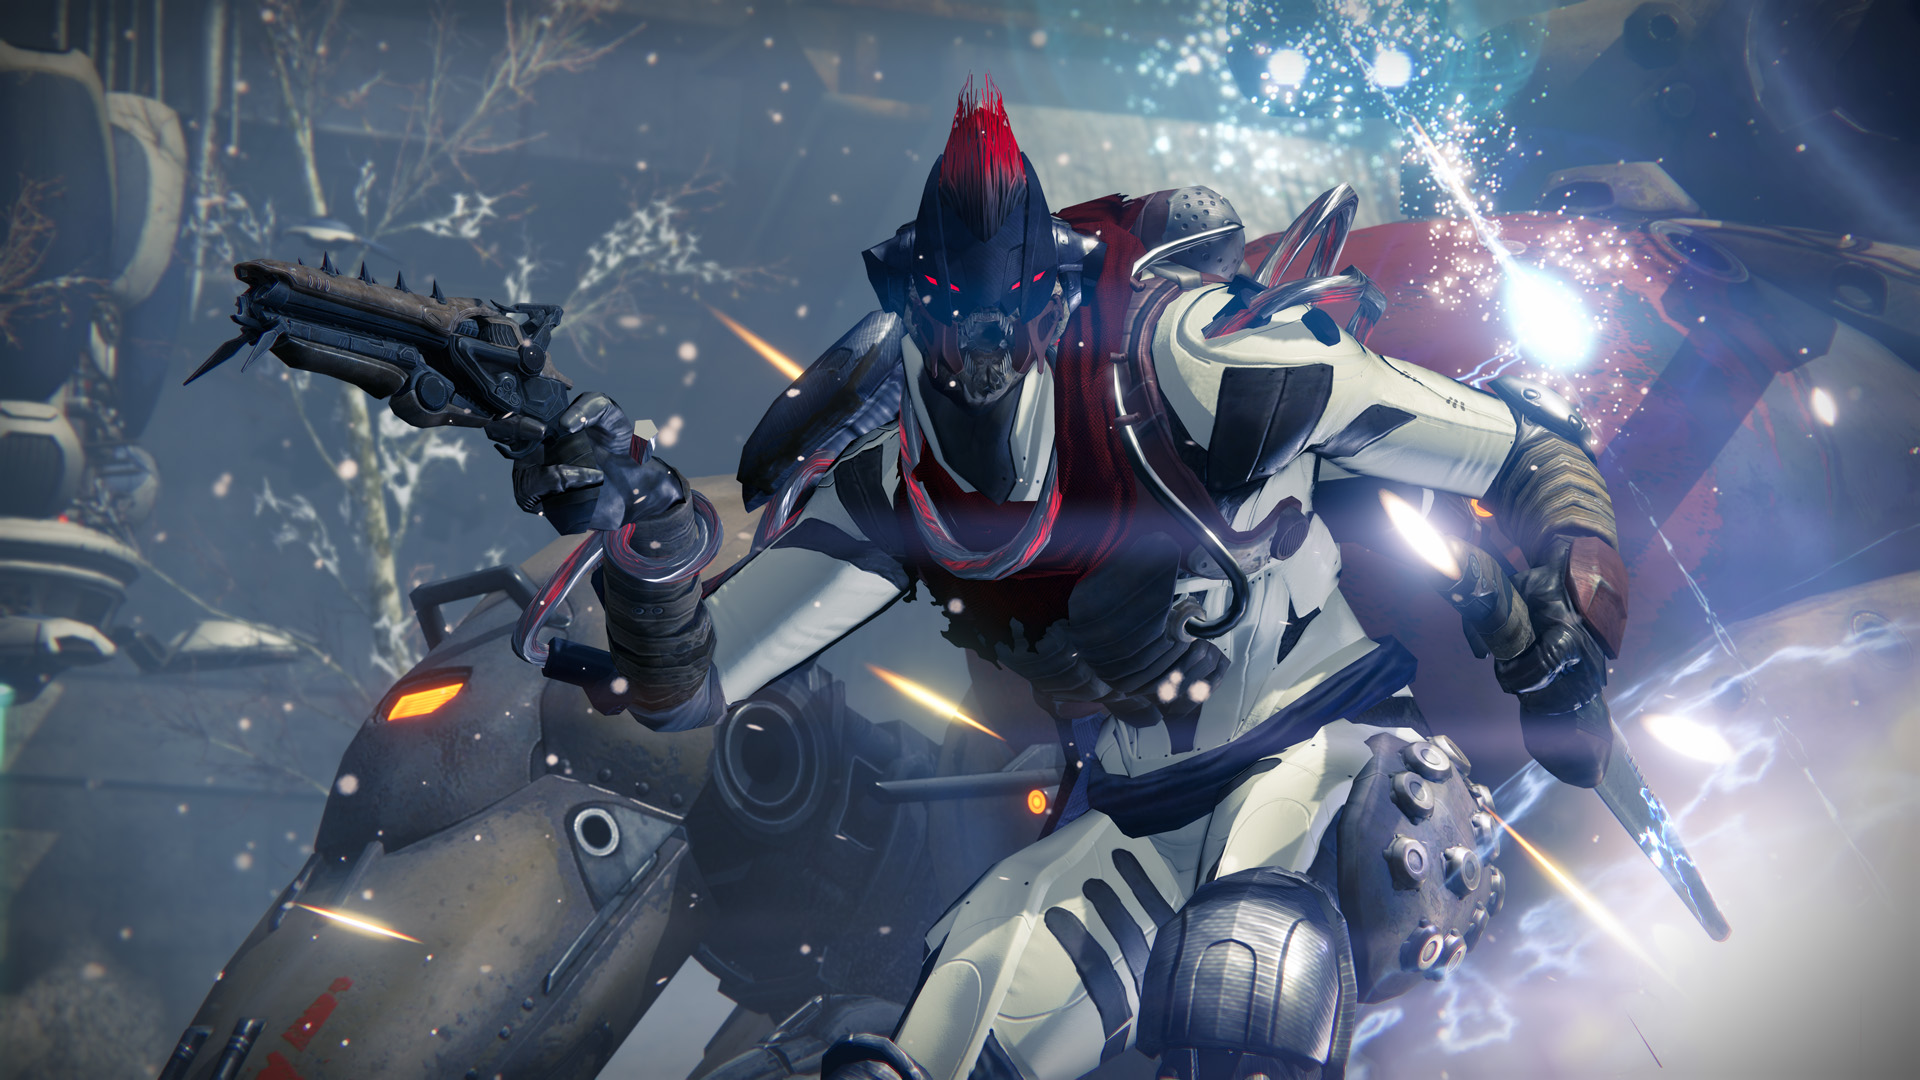 Destiny's newest patch prepares for Rise of Iron